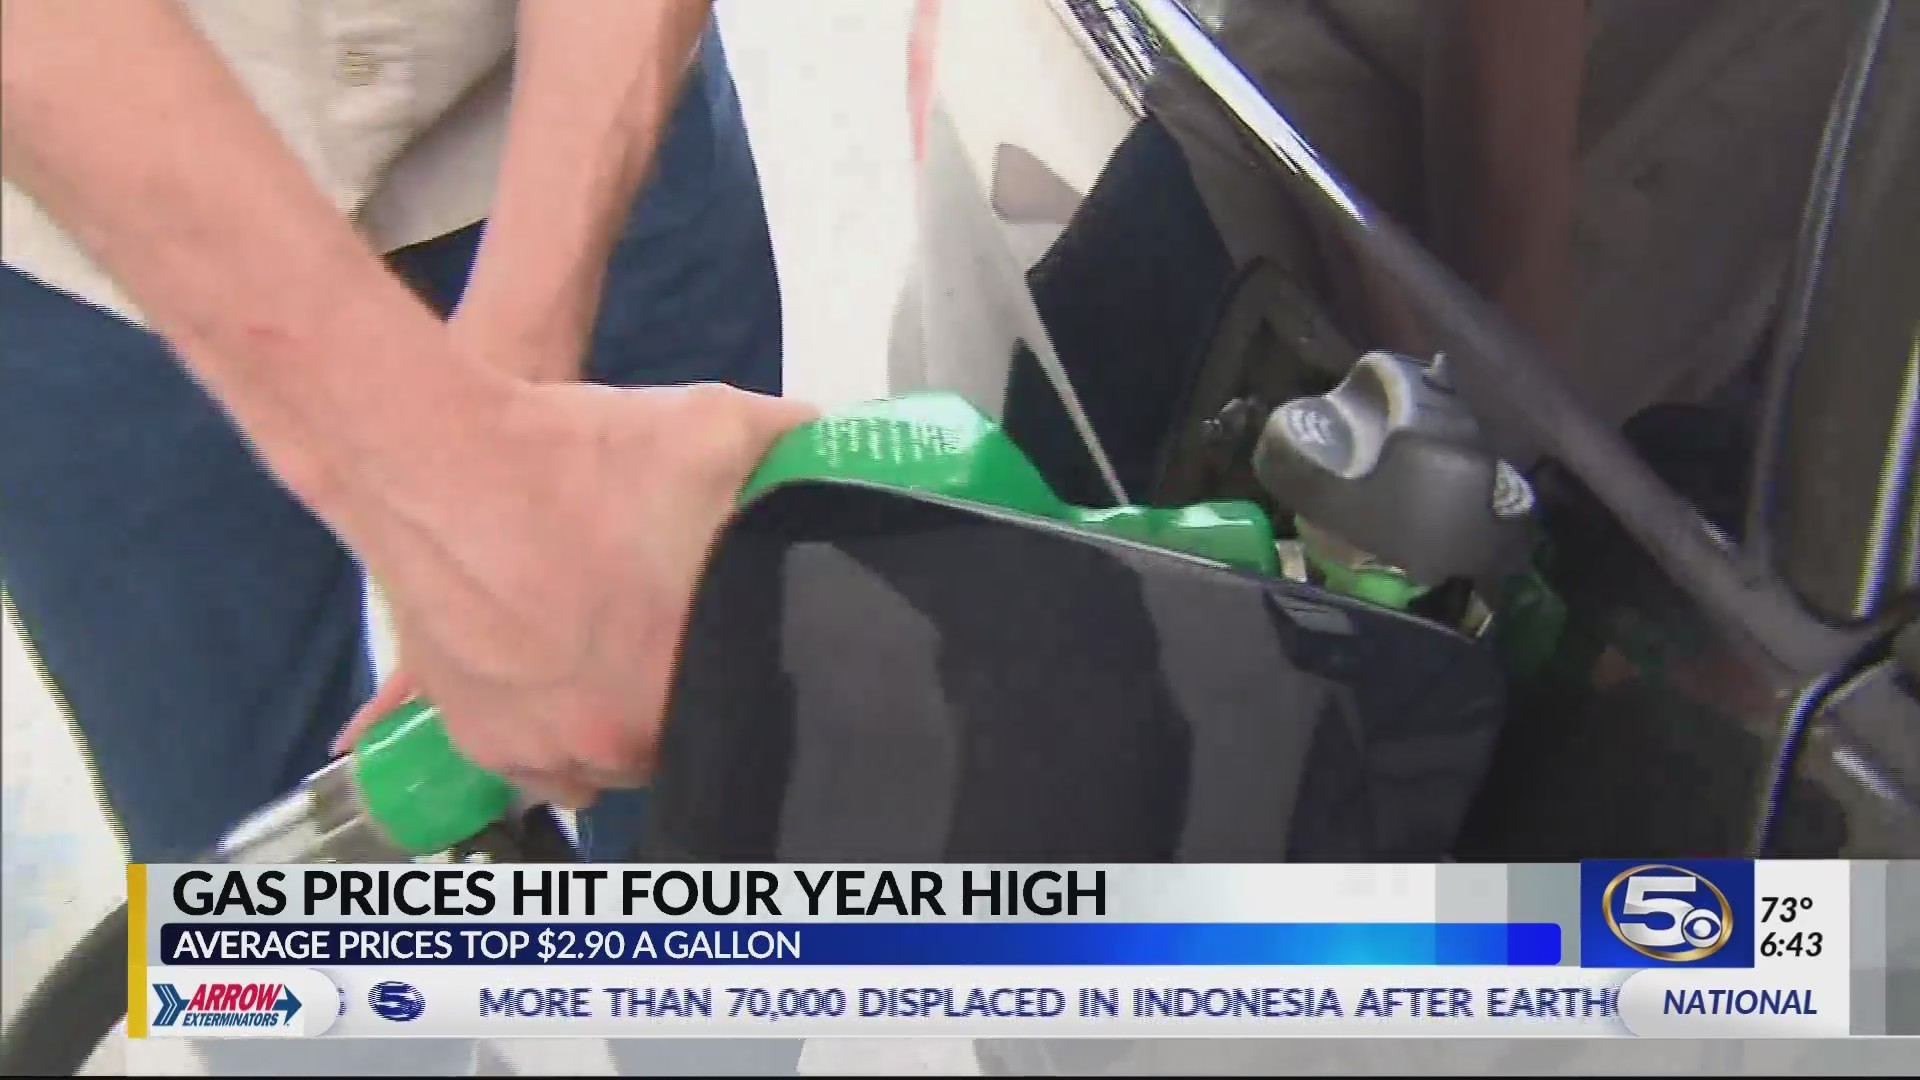 Gas prices hit four year high